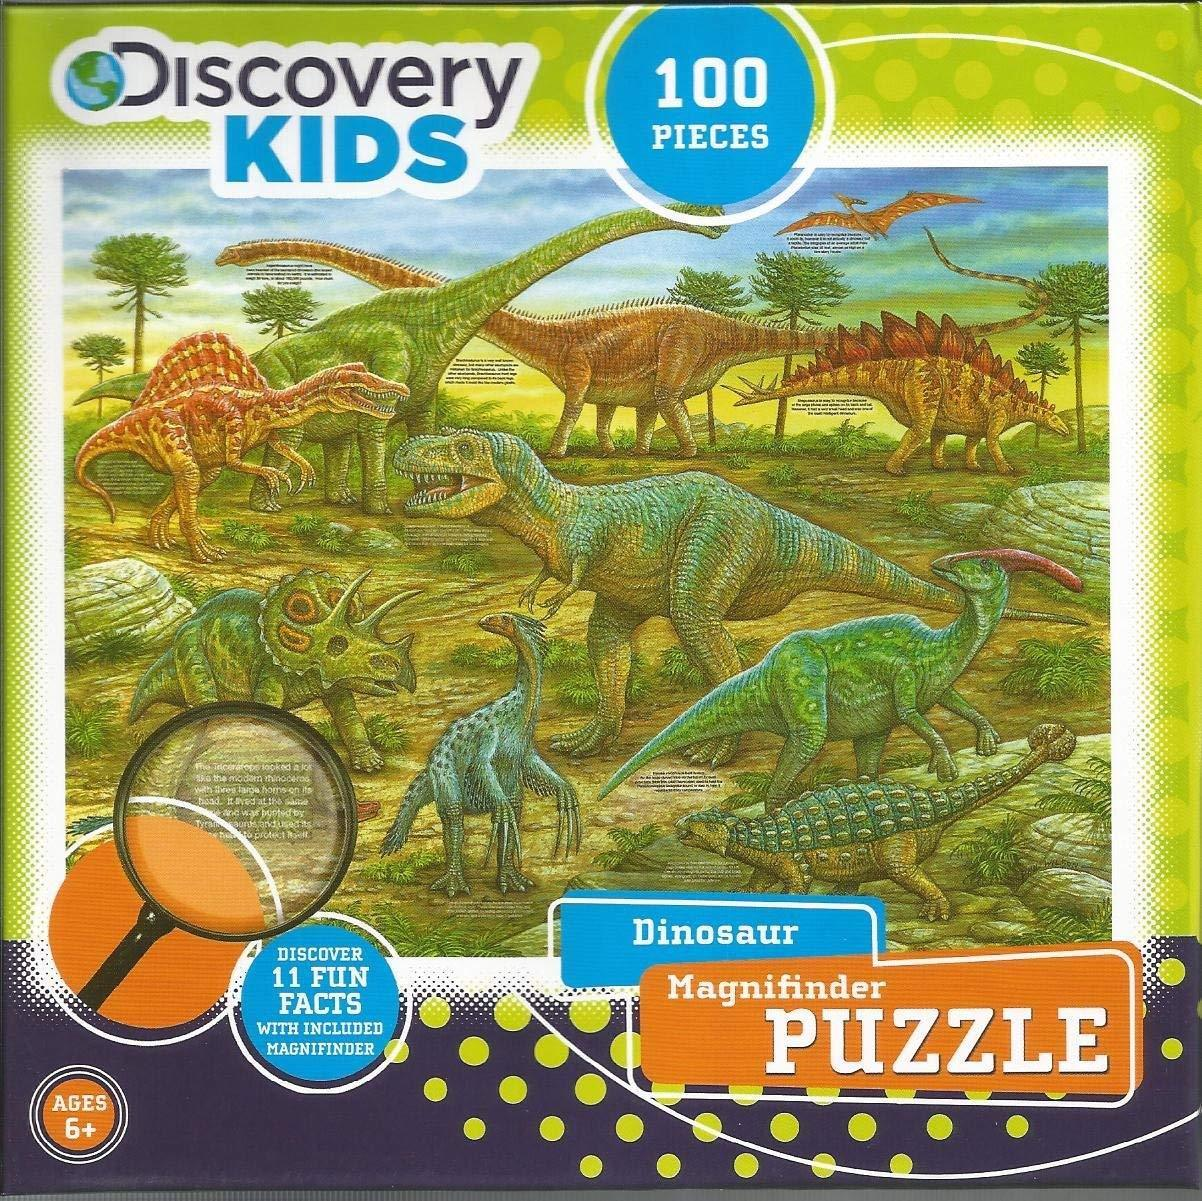 Discovery Kids Dinosaur 100 Piece Puzzle Magnifinder Fact Brontosaurus T-Rex